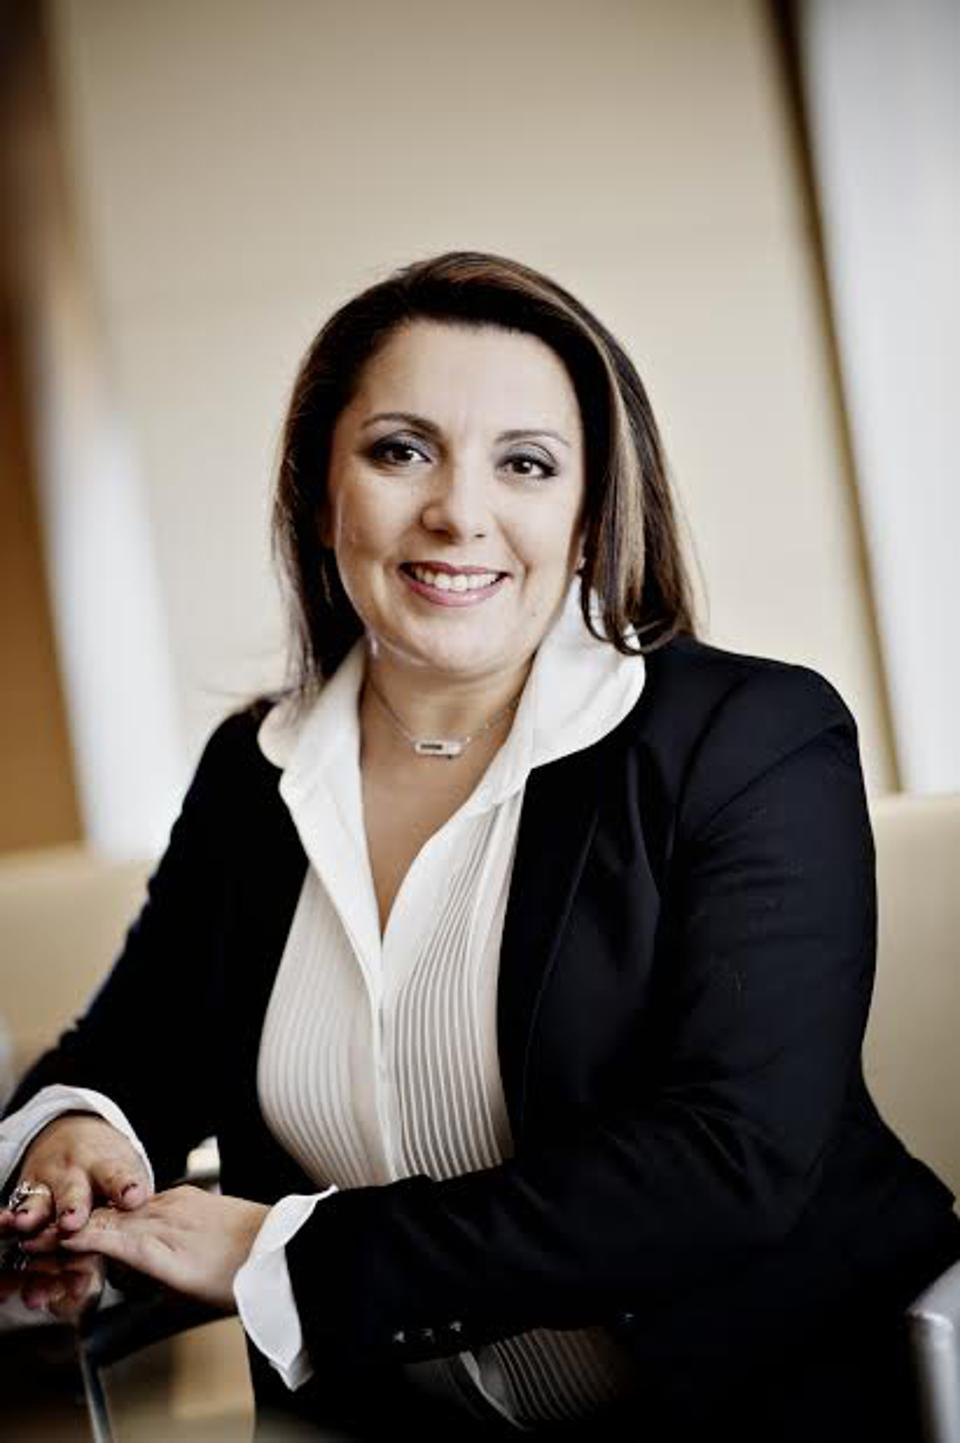 Alexa Guenoun, president of the Americas and Global Head of Partners for Temenos.